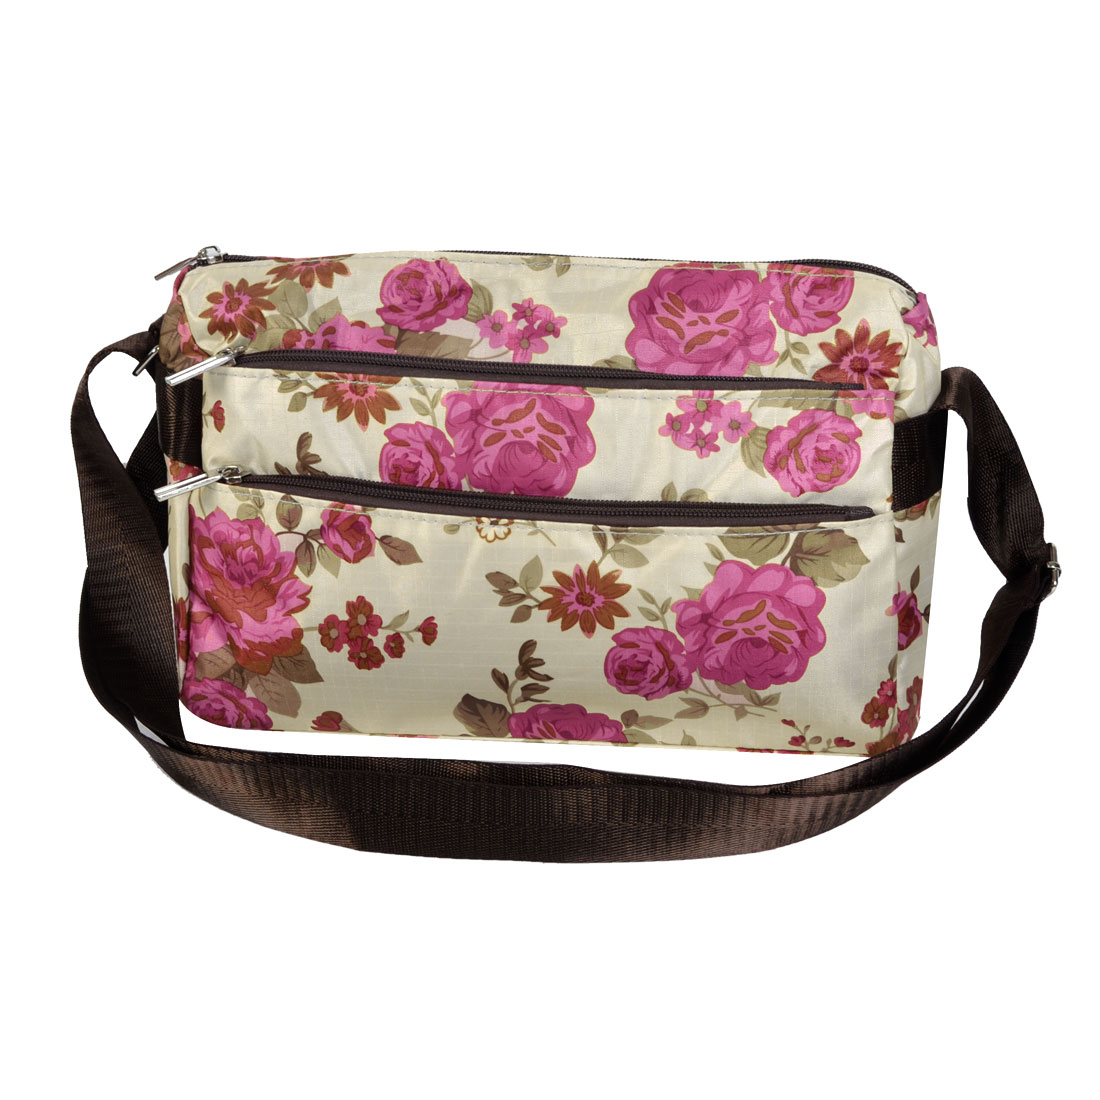 Women Floral Pattern Rectangle Shaped Zipper Closure Nylon Shoulder Bag Handbag